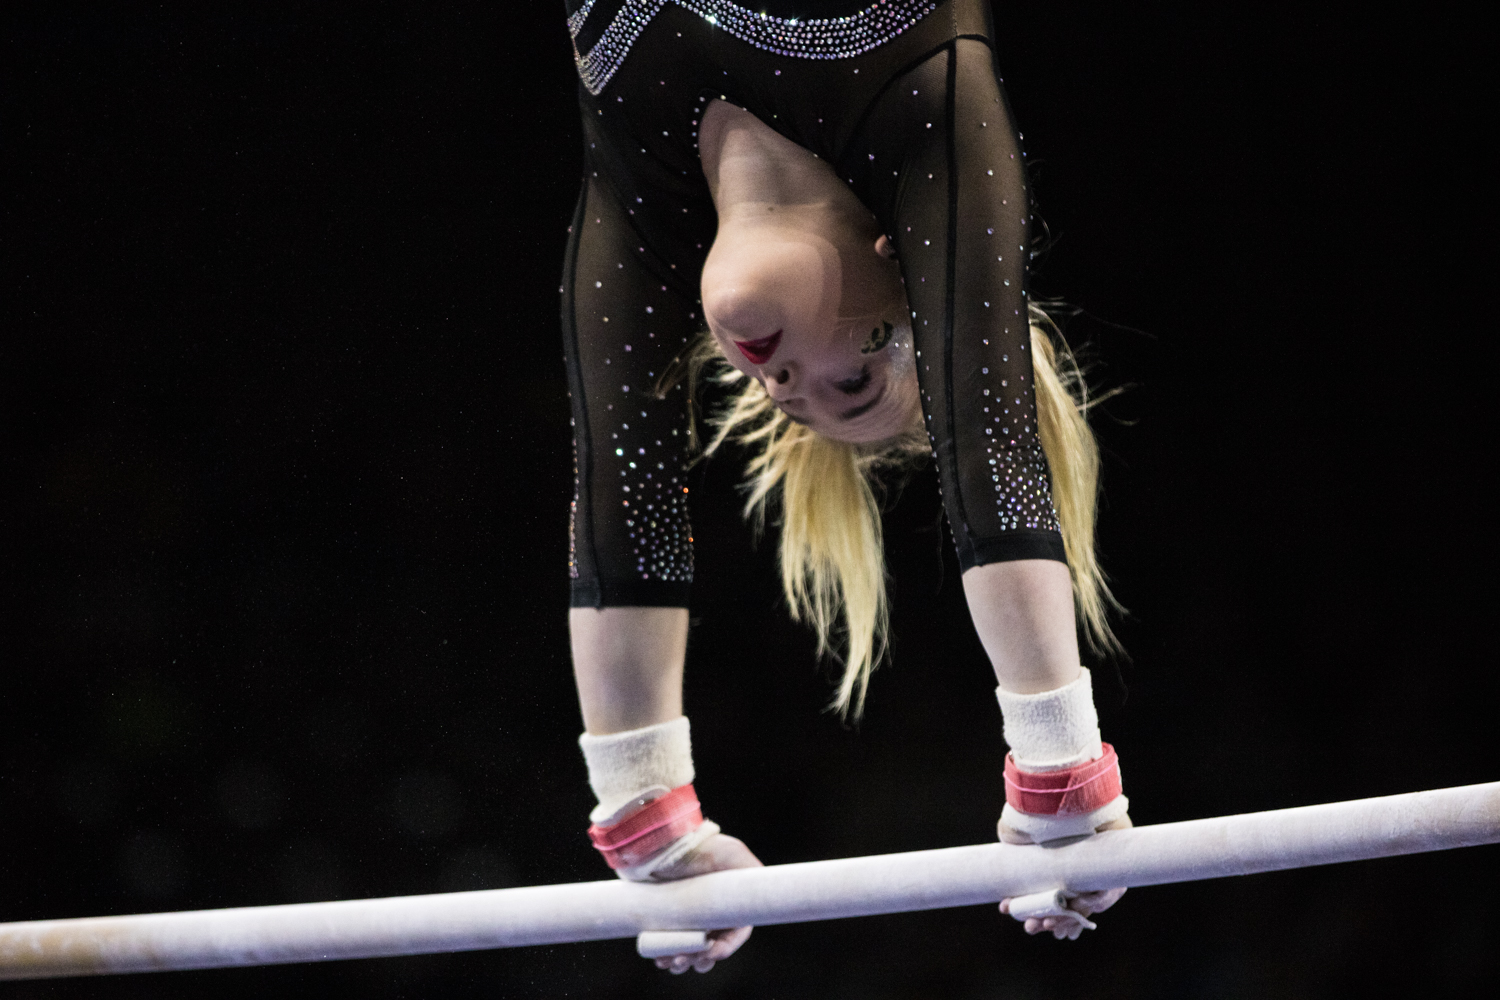 Iowa%27s+Charlotte+Sullivan+competes+on+uneven+bars+during+a+women%27s+gymnastics+meet+between+Iowa+and+Iowa+State+at+Carver-Hawkeye+Arena+on+Friday%2C+March+1%2C+2019.+Sullivan+scored+9.825+in+the+event.+The+Hawkeyes%2C+celebrating+senior+night%2C+fell+to+the+Cyclones%2C+196.275-196.250.+